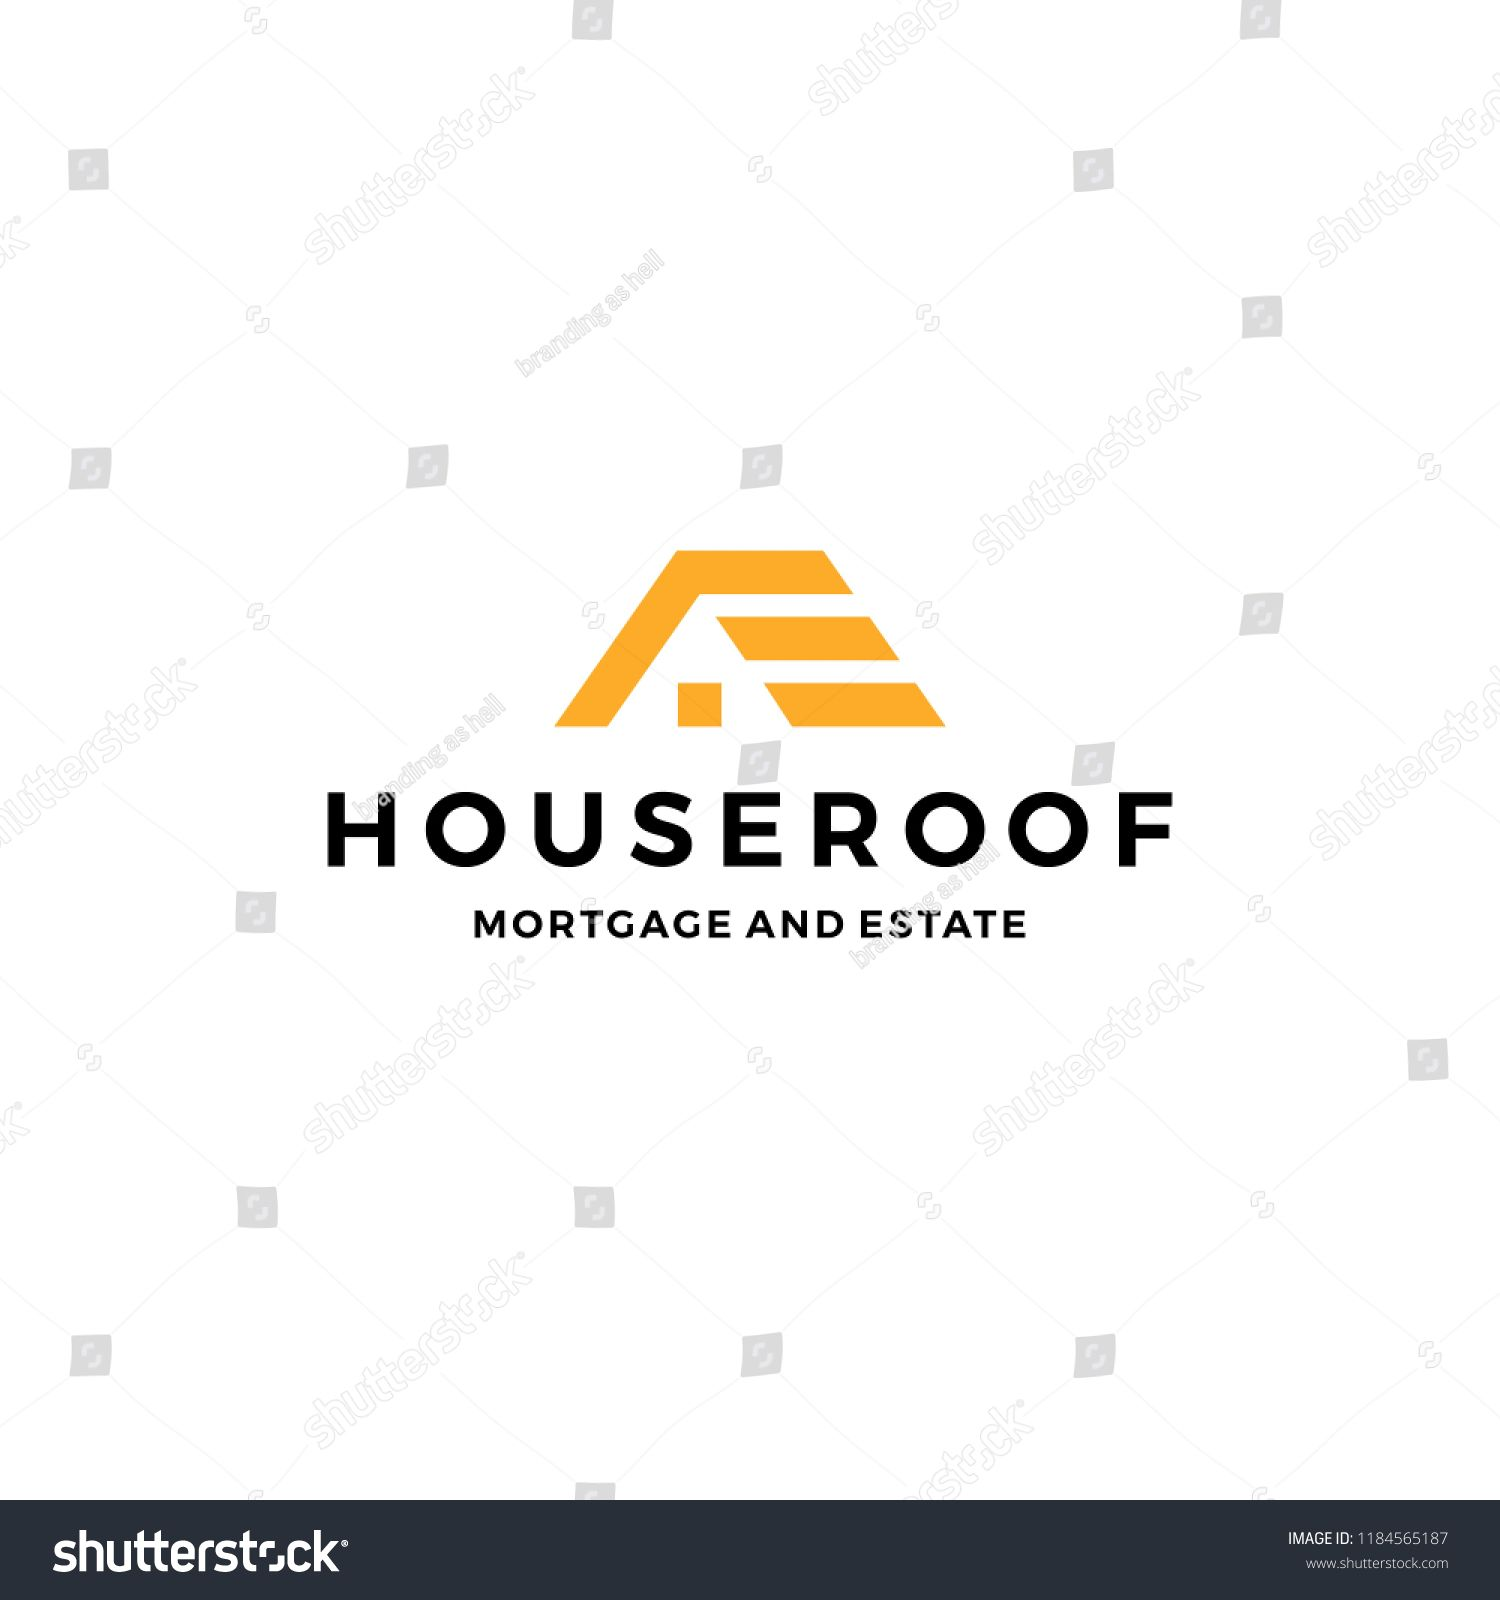 home house logo vector icon #logo, #house, #estate, #real ... on architecture icons, home construction artwork, home construction windows, home builder icon, home construction theme, home construction software, home construction photography, home construction clip art, home construction illustration, contractors icons, home logo construction, home construction tips, home construction united states, home construction data, remodeling icons, home construction cards, electrical icons, home construction quotes, home under construction, home construction wallpaper,